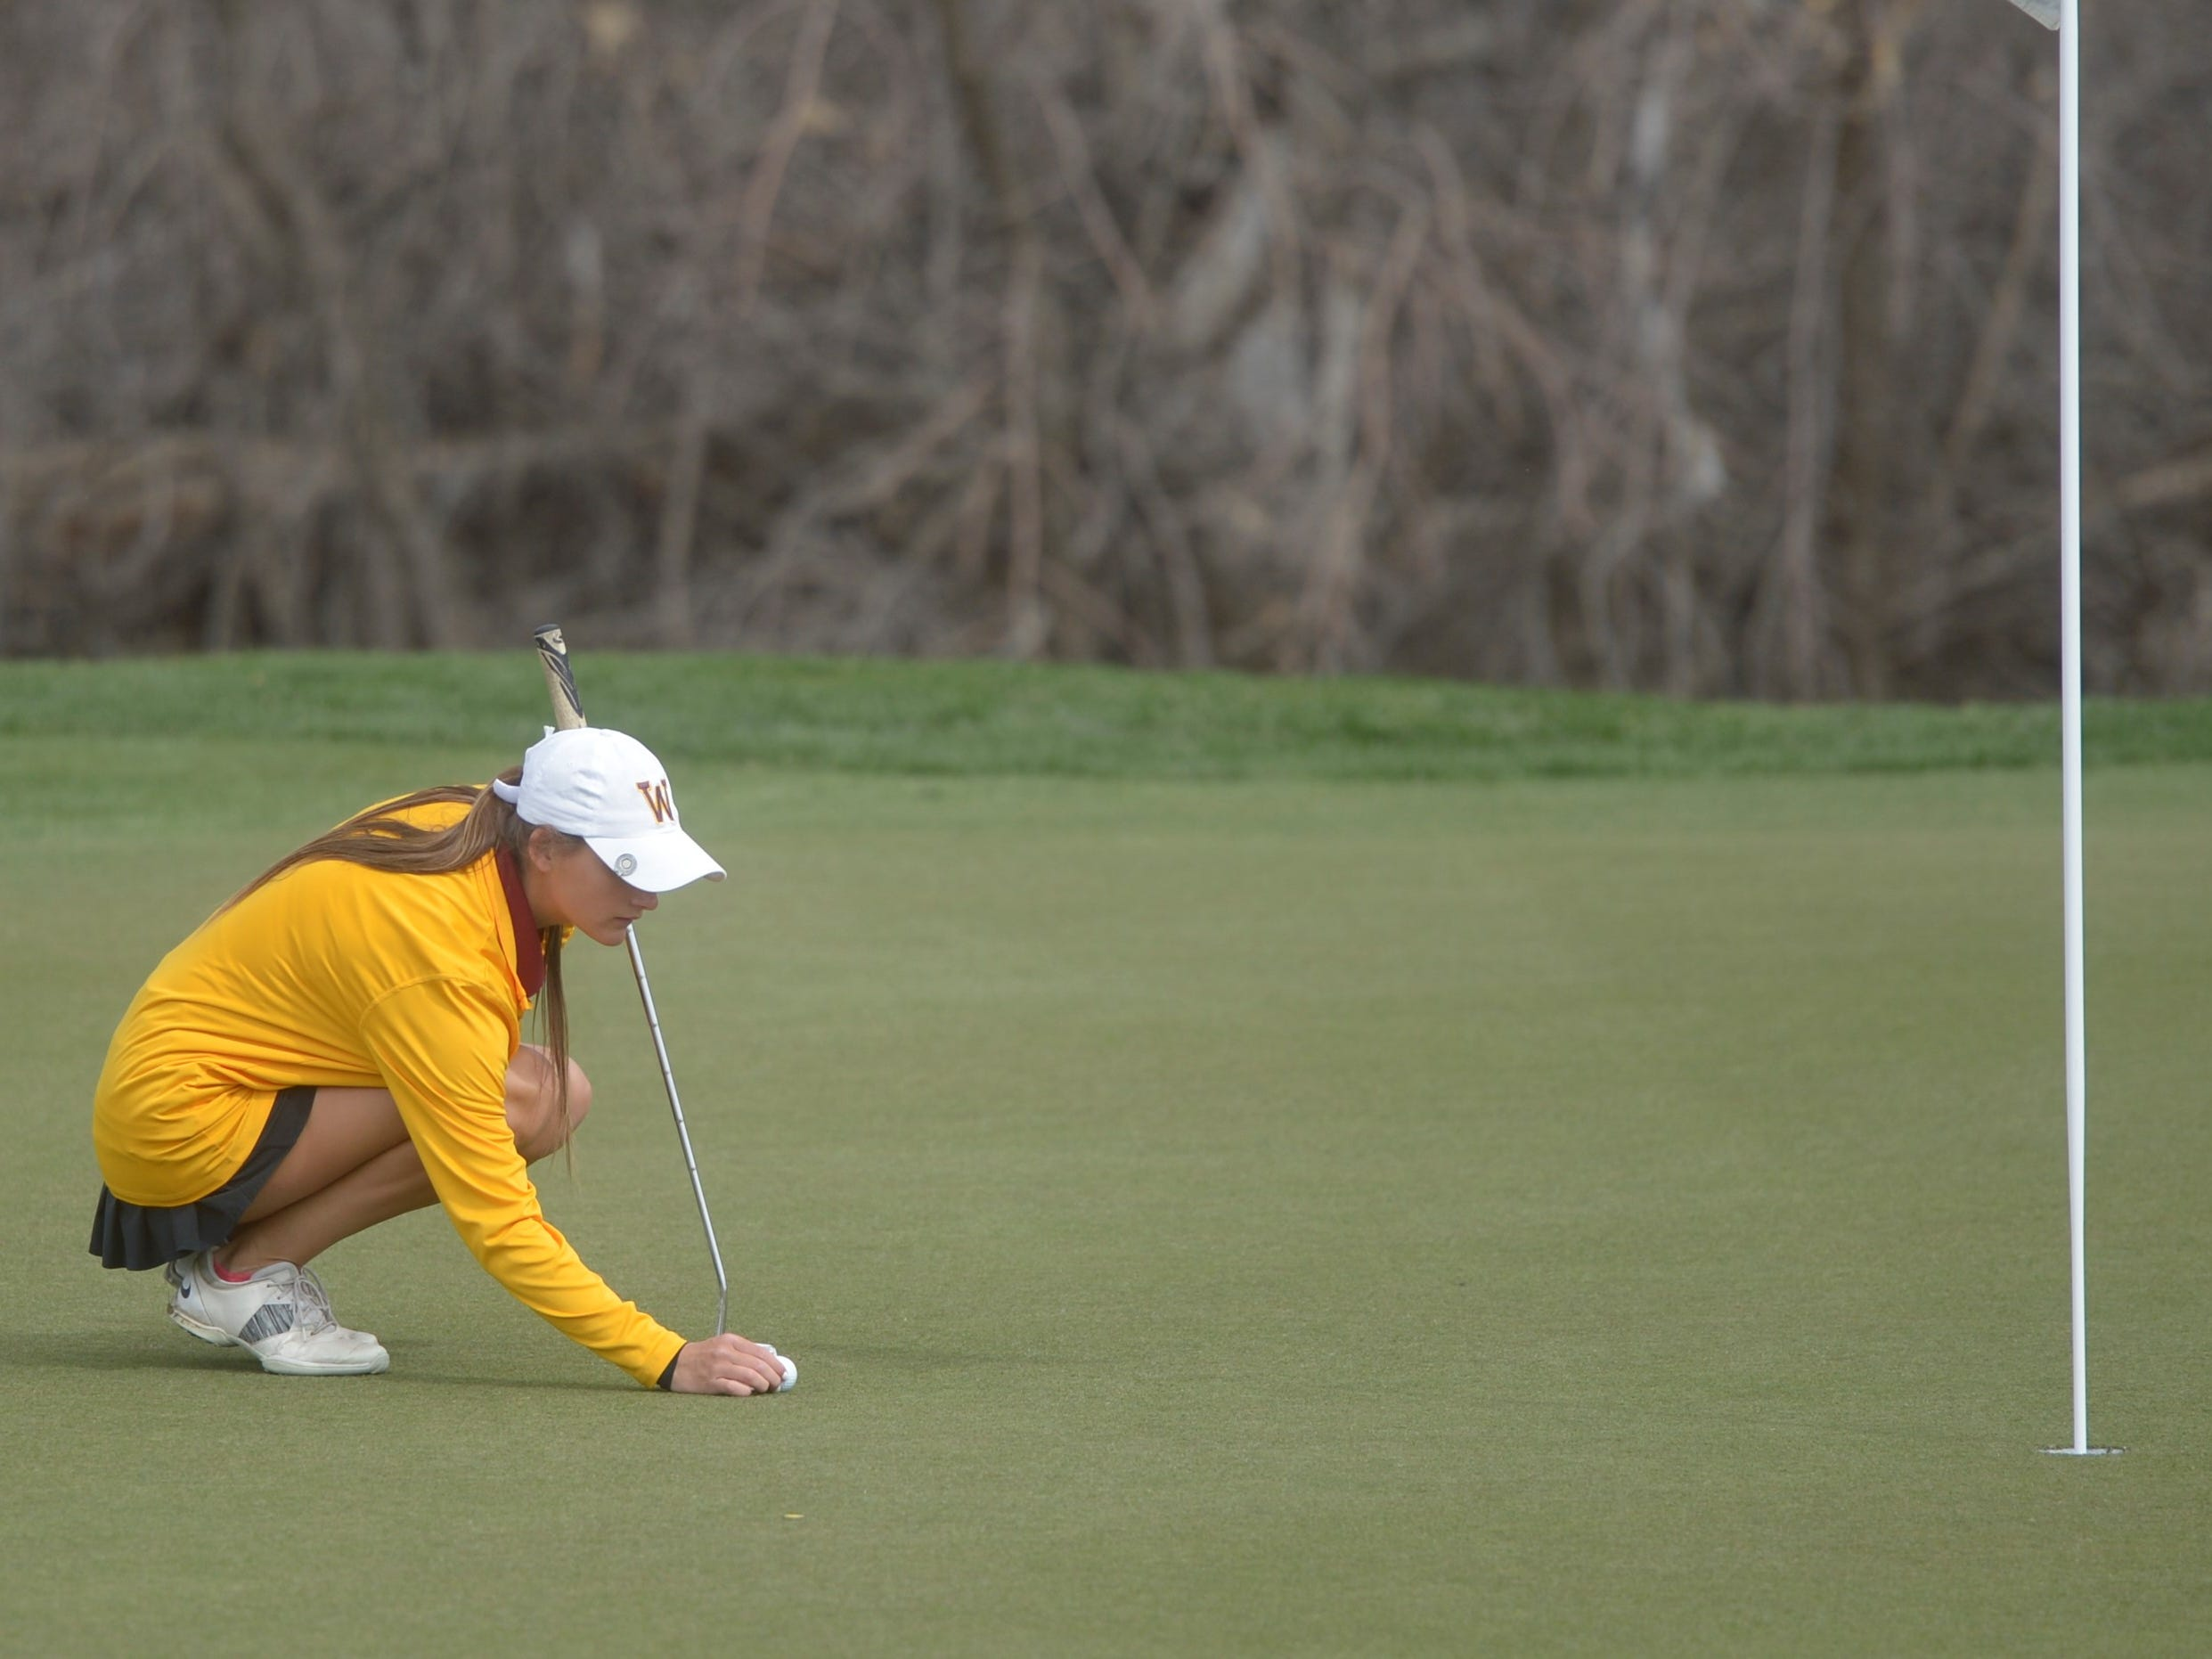 Windsor golfer Sarah Johnson places her ball at the Tri-Valley League match at TPC Colorado in Berthoud on Monday, April 15. Windsor won the event. It's the first Tournament Players Club course in the state.